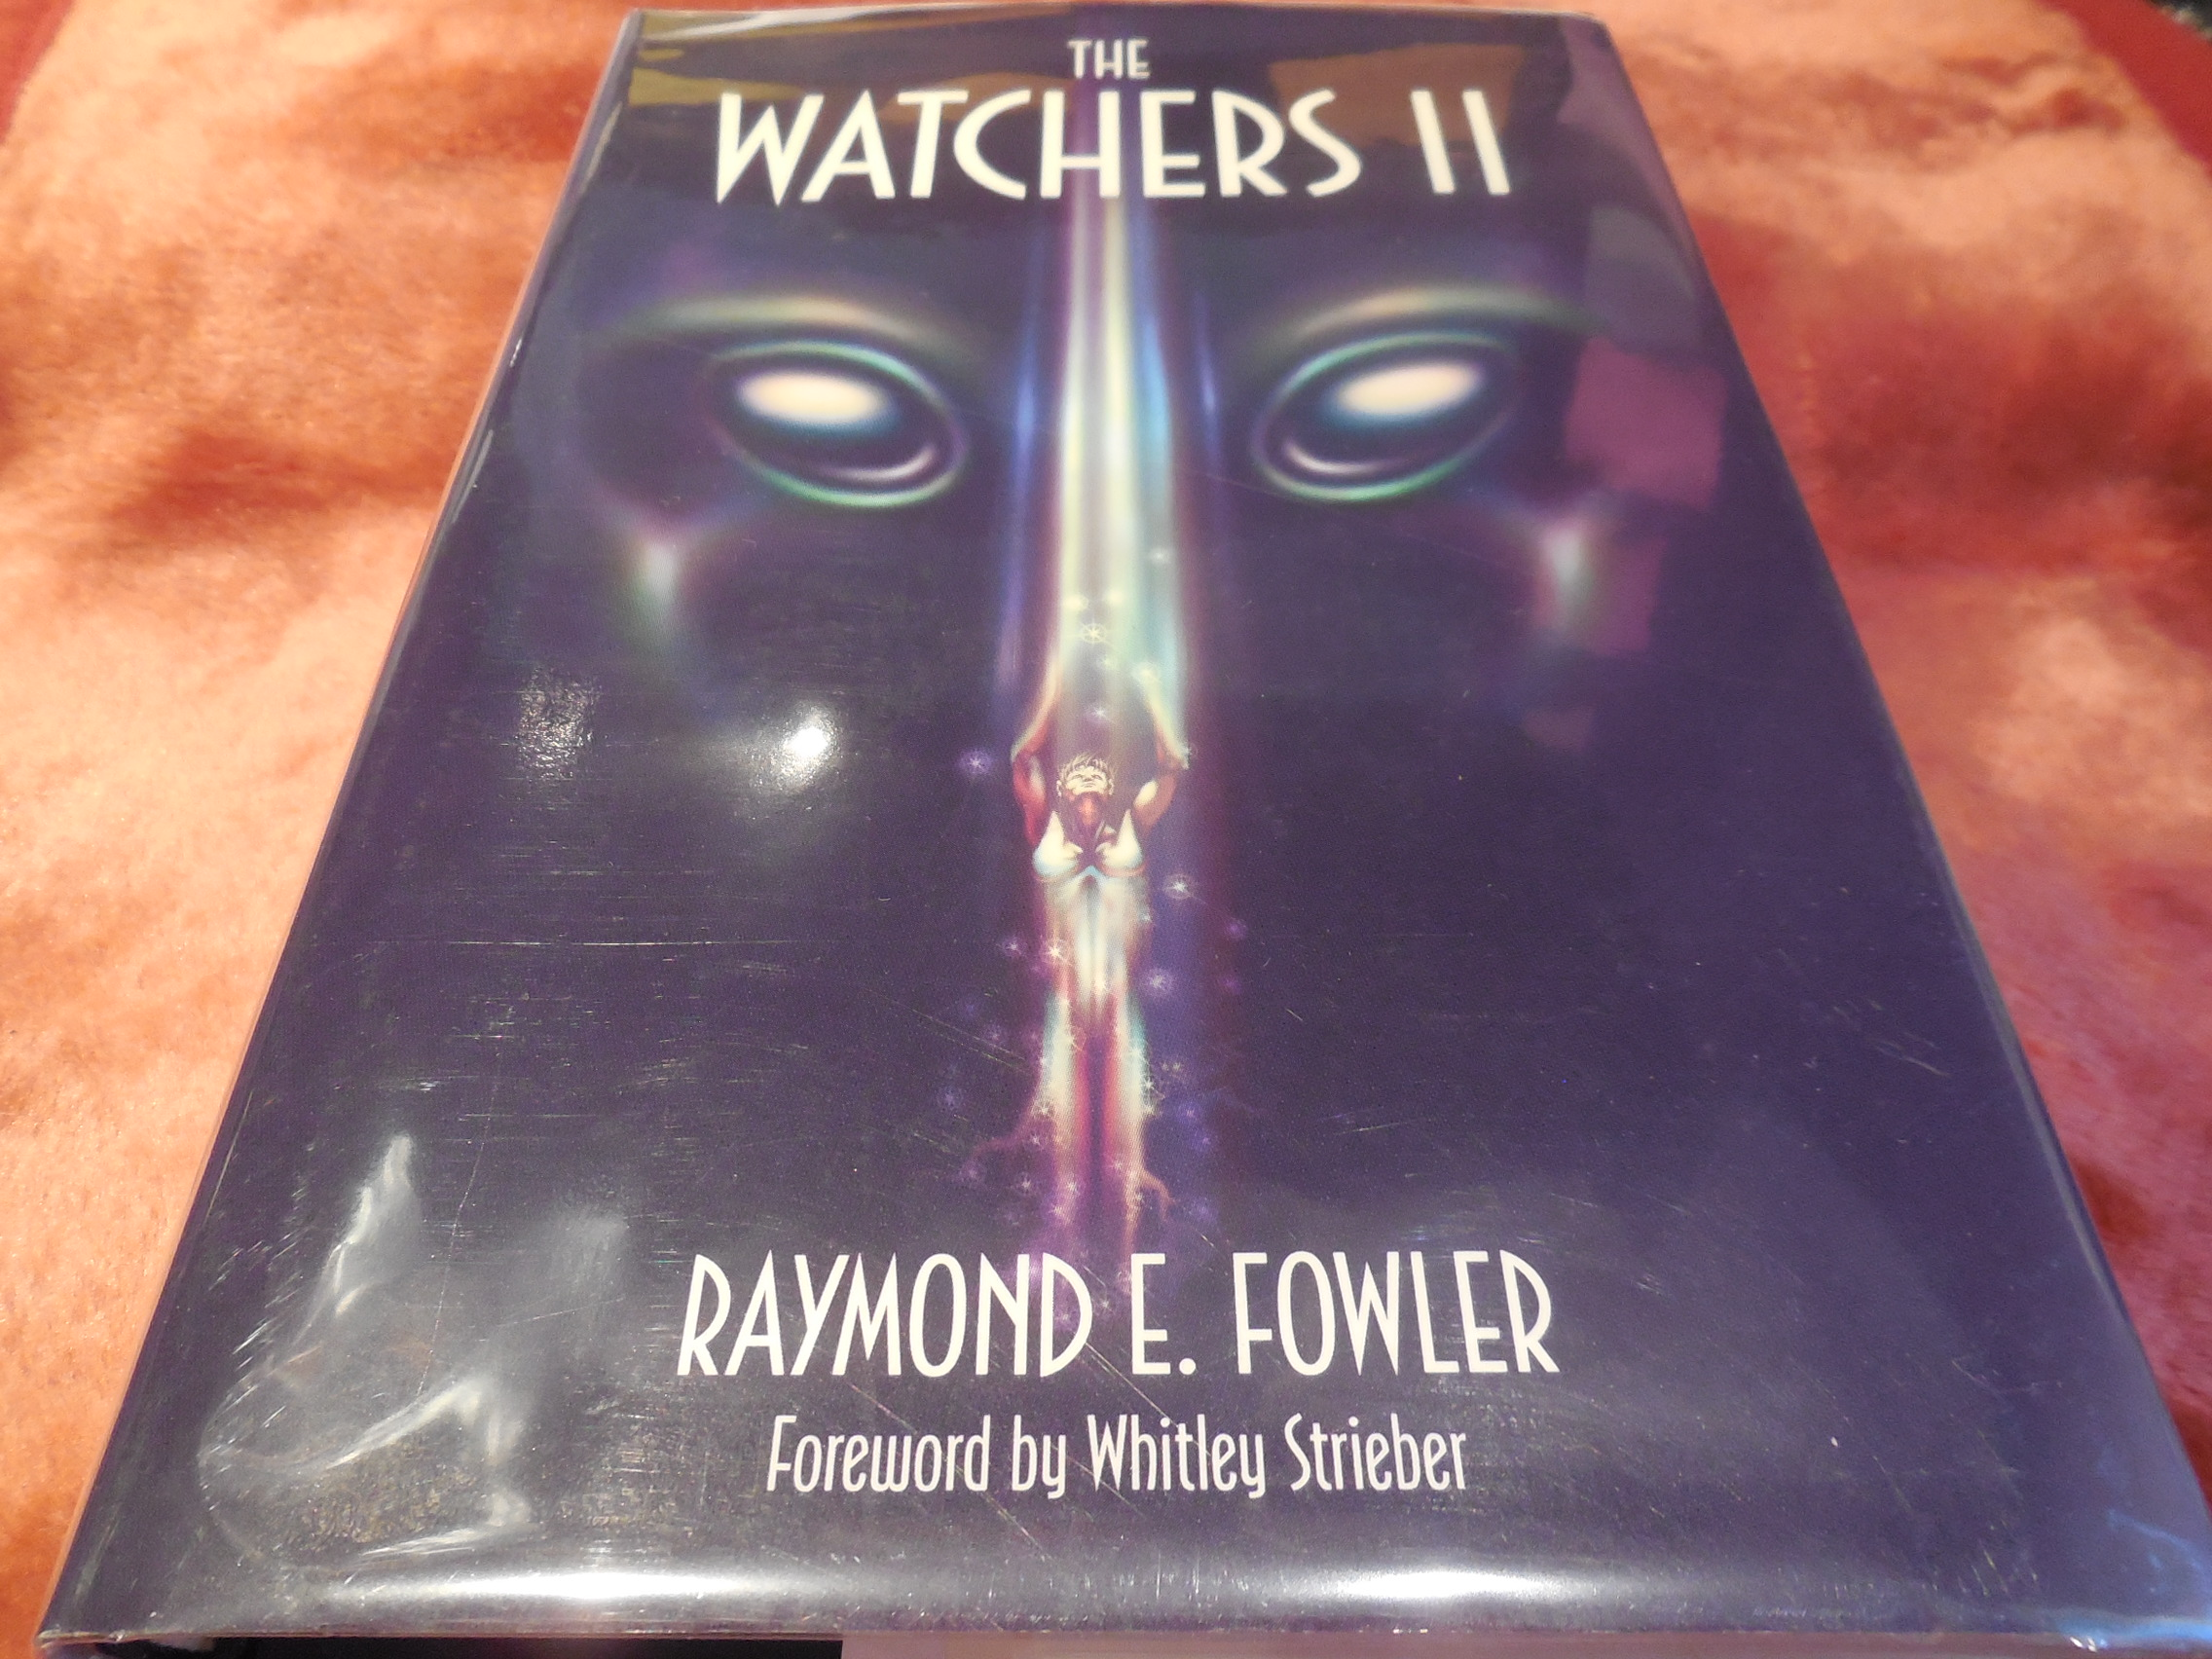 Image for The Watchers II: Exploring Ufos and the Near-Death Experience